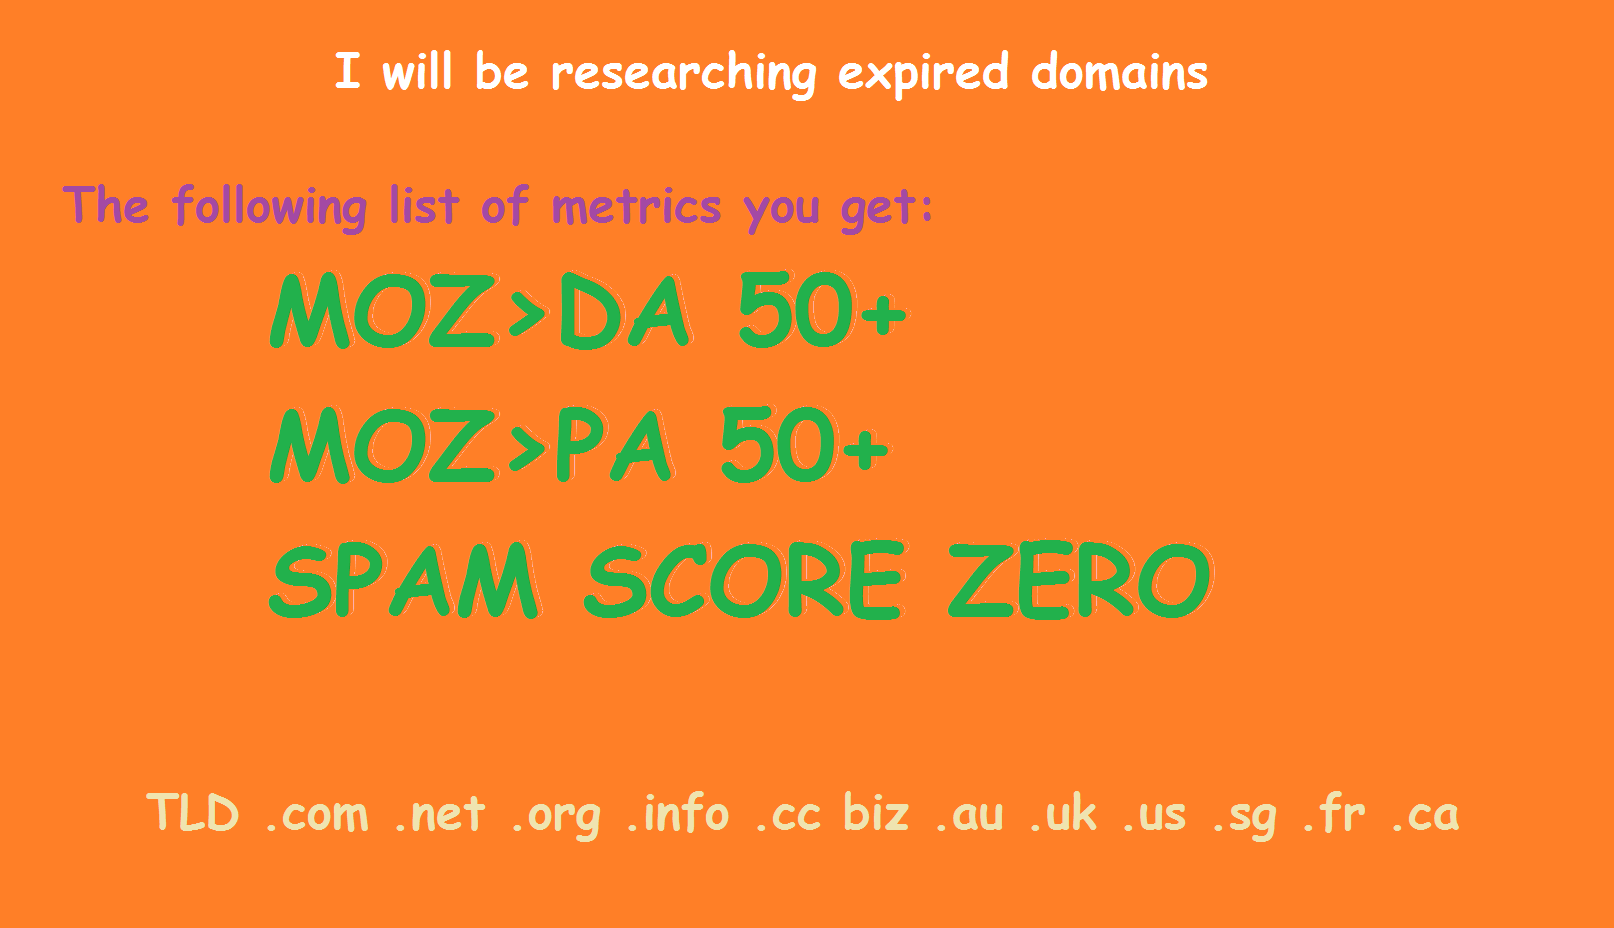 researching expired domain for PBN DA50+ PA30+